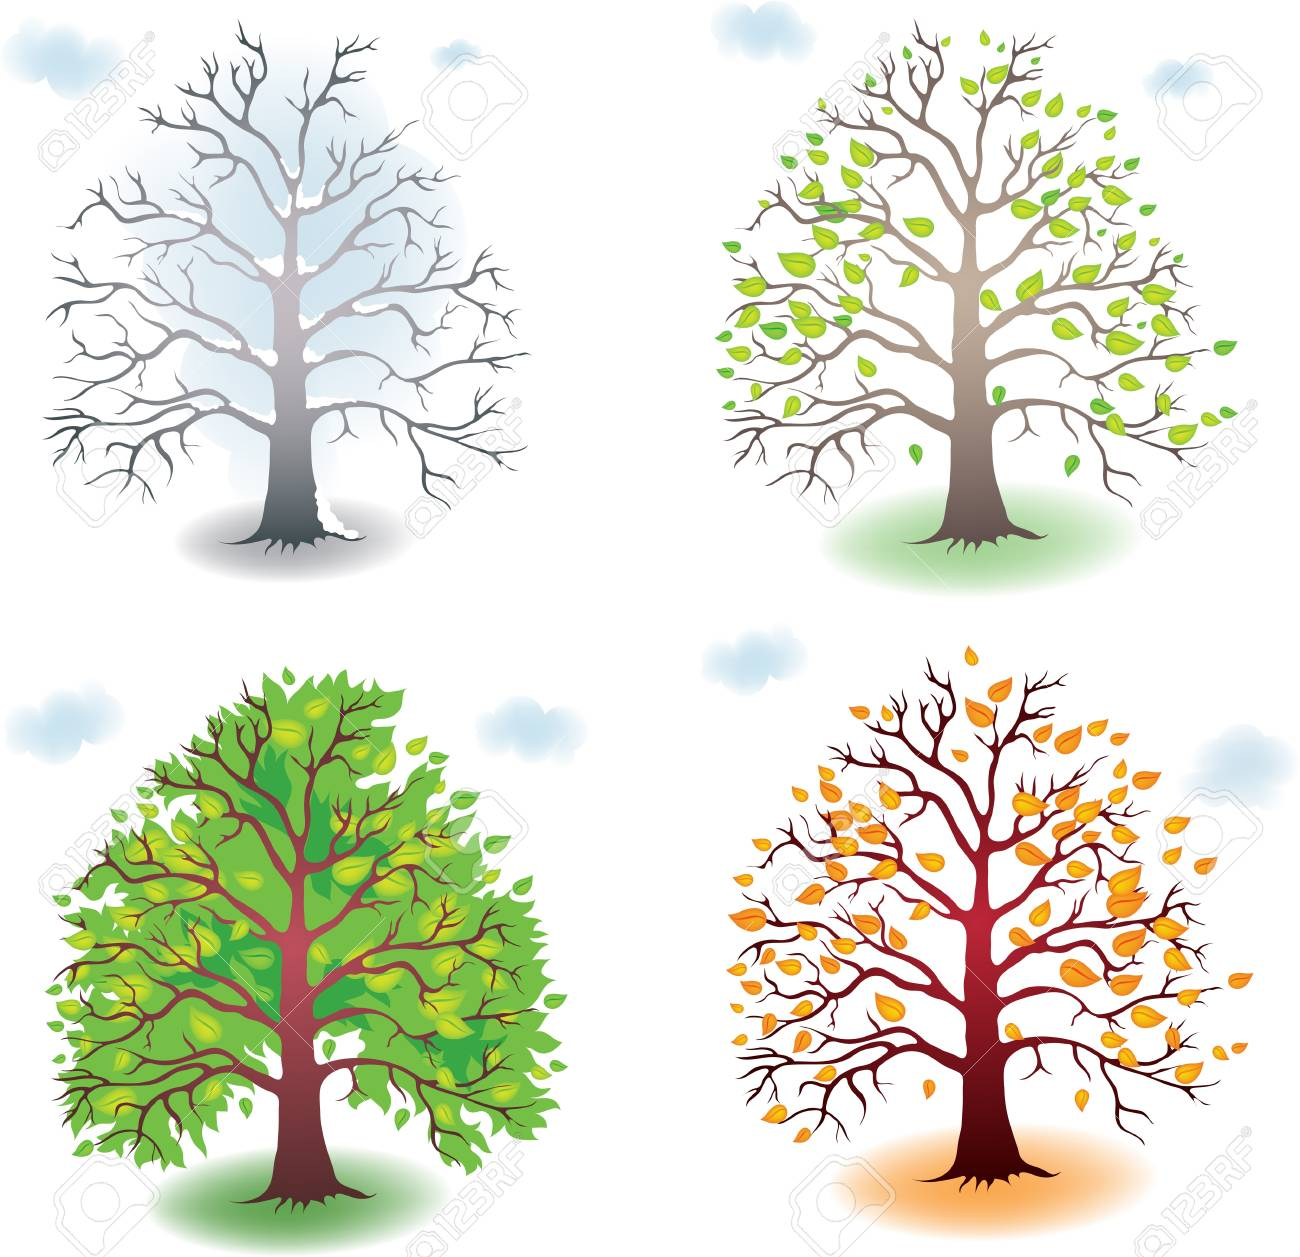 Four states of the tree during the seasons Stock Vector - 9931205